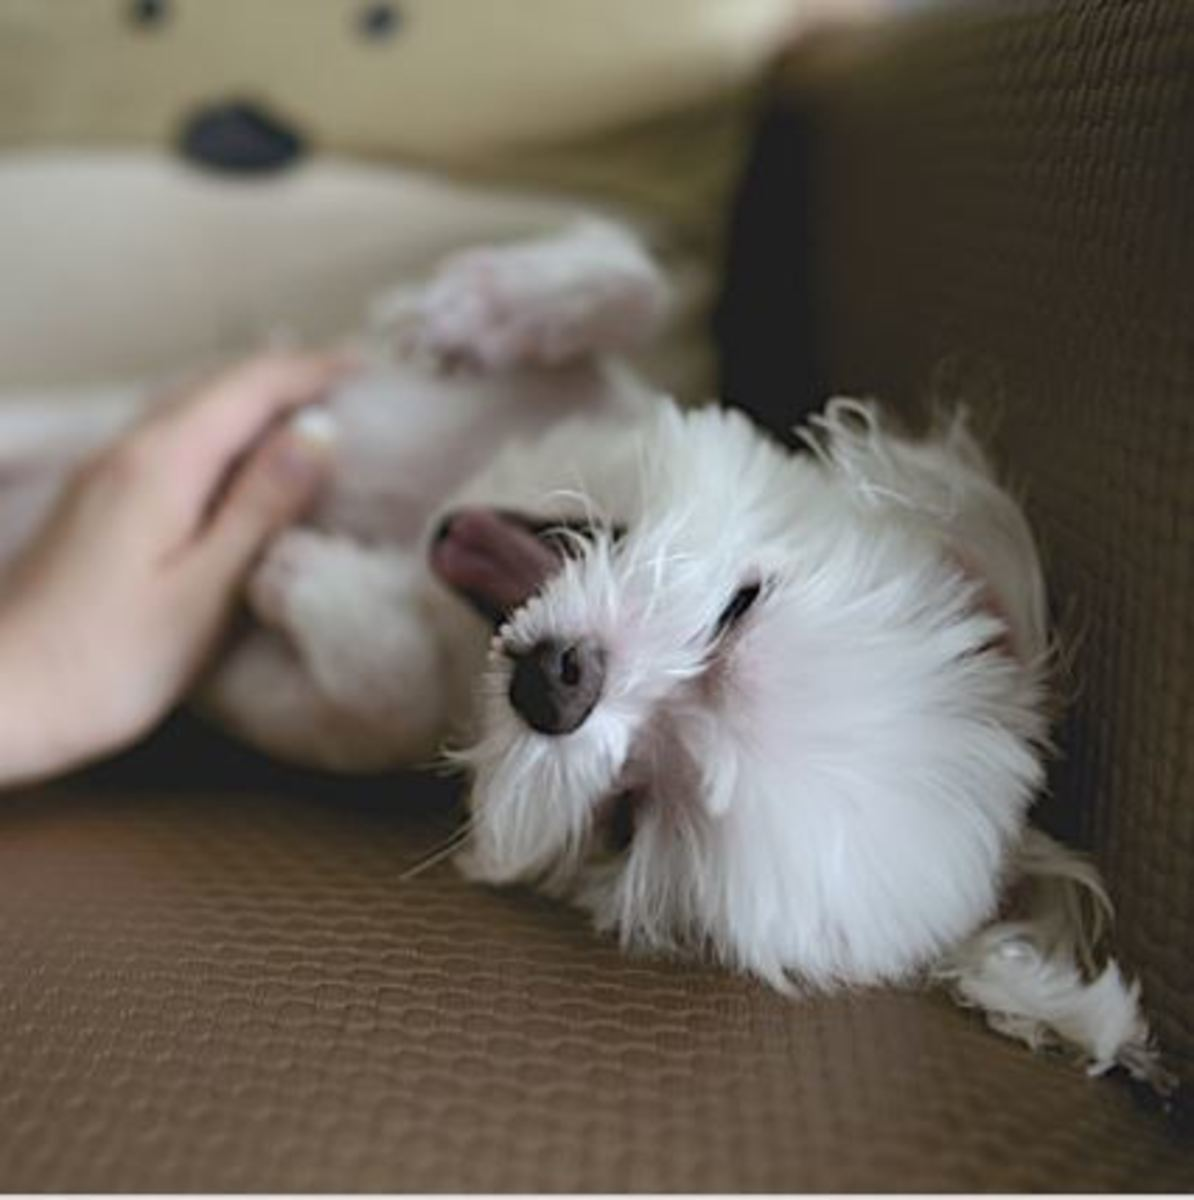 What causes black skin on a dog's belly?